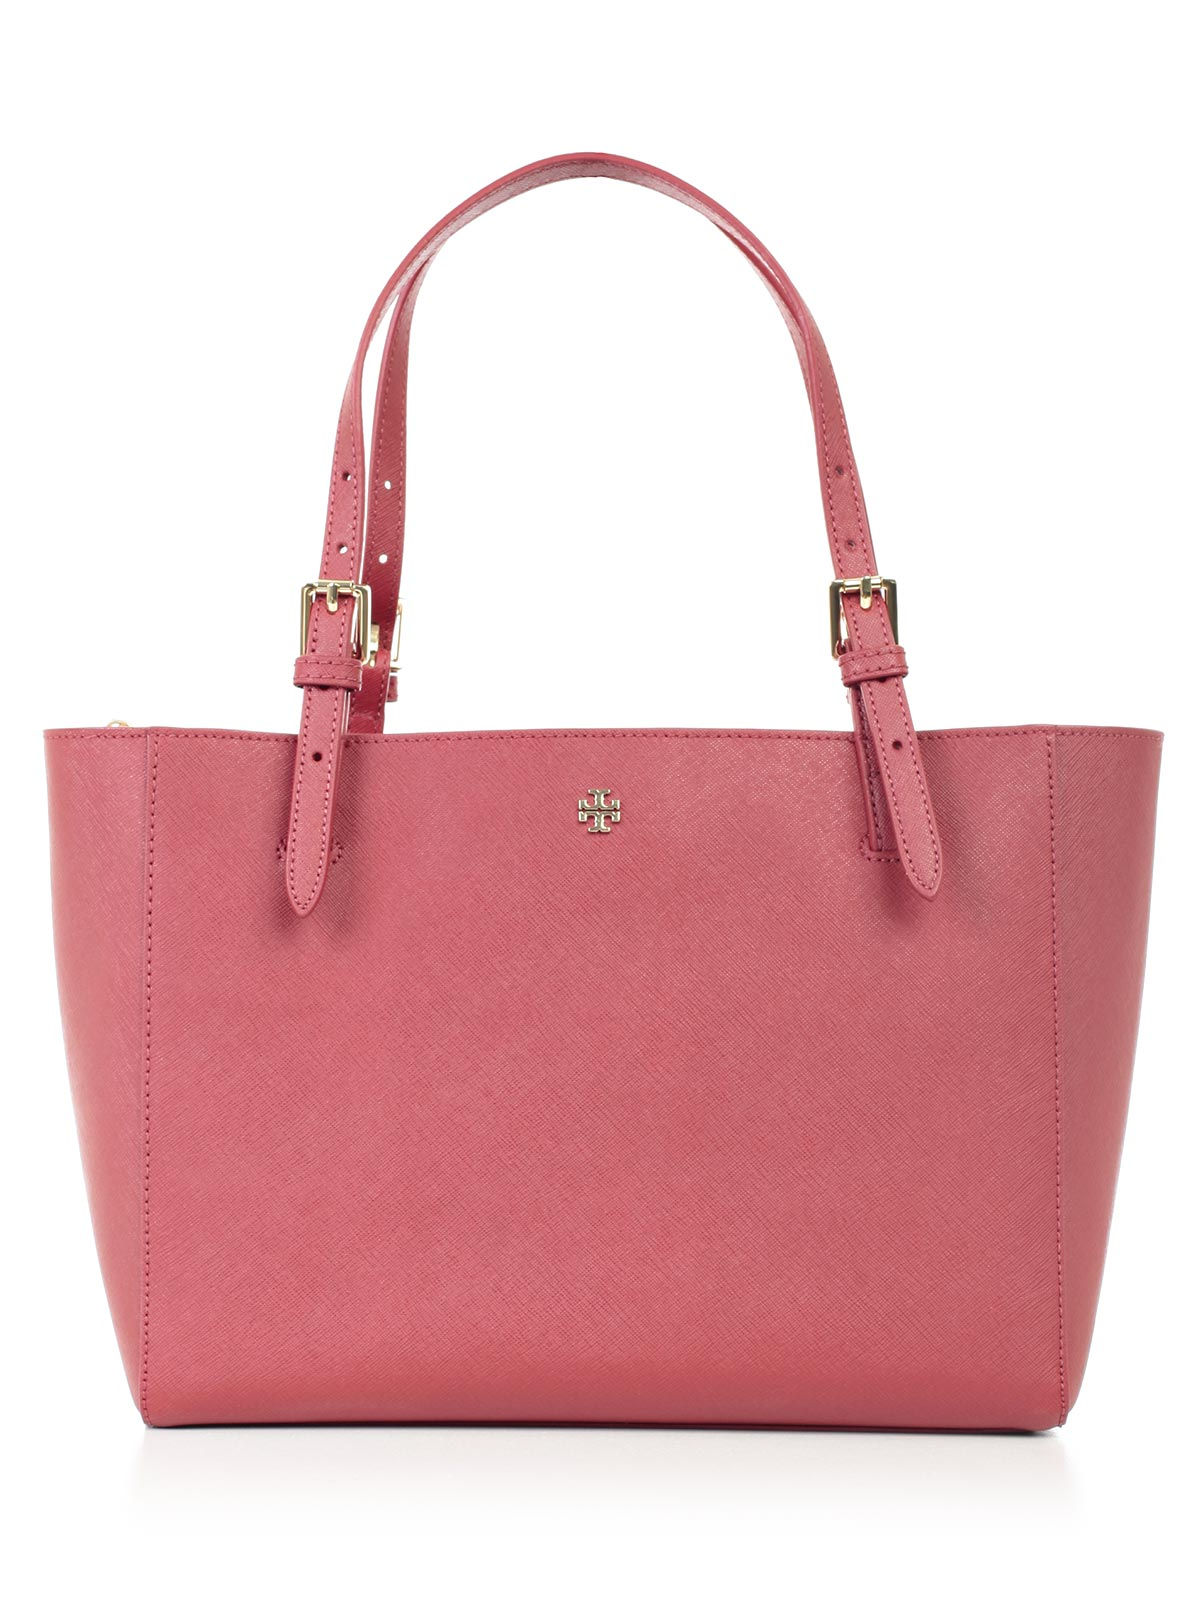 Picture of TORY BURCH BAG BORSA YORK SMALL BUCKLE TOTE